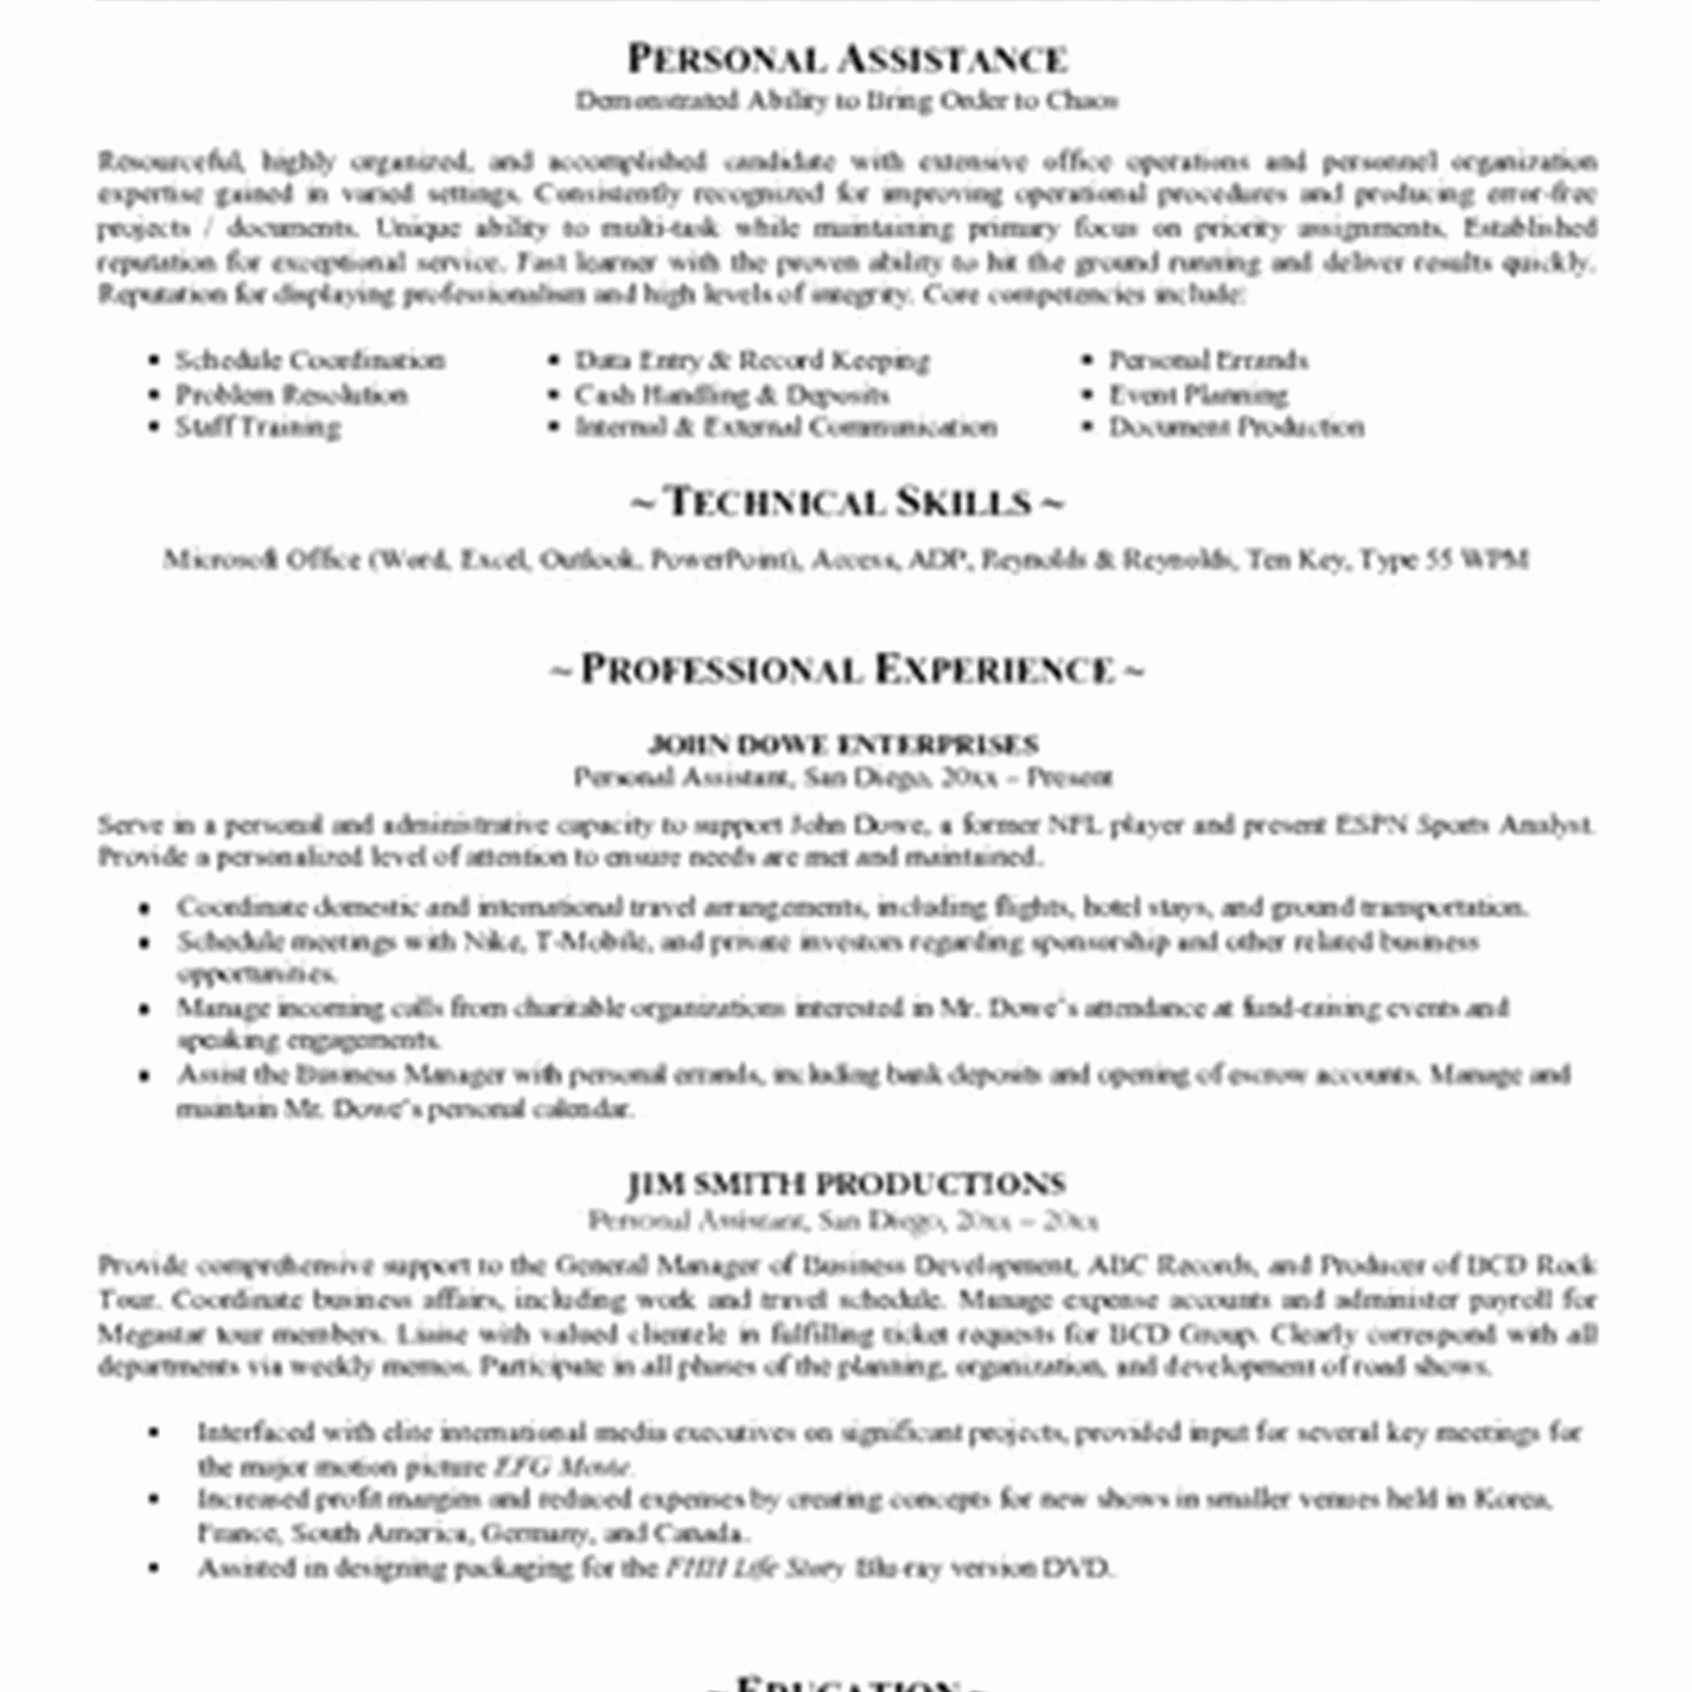 Home Health Aide Resume Skills - Home Health Aide Resume Skills